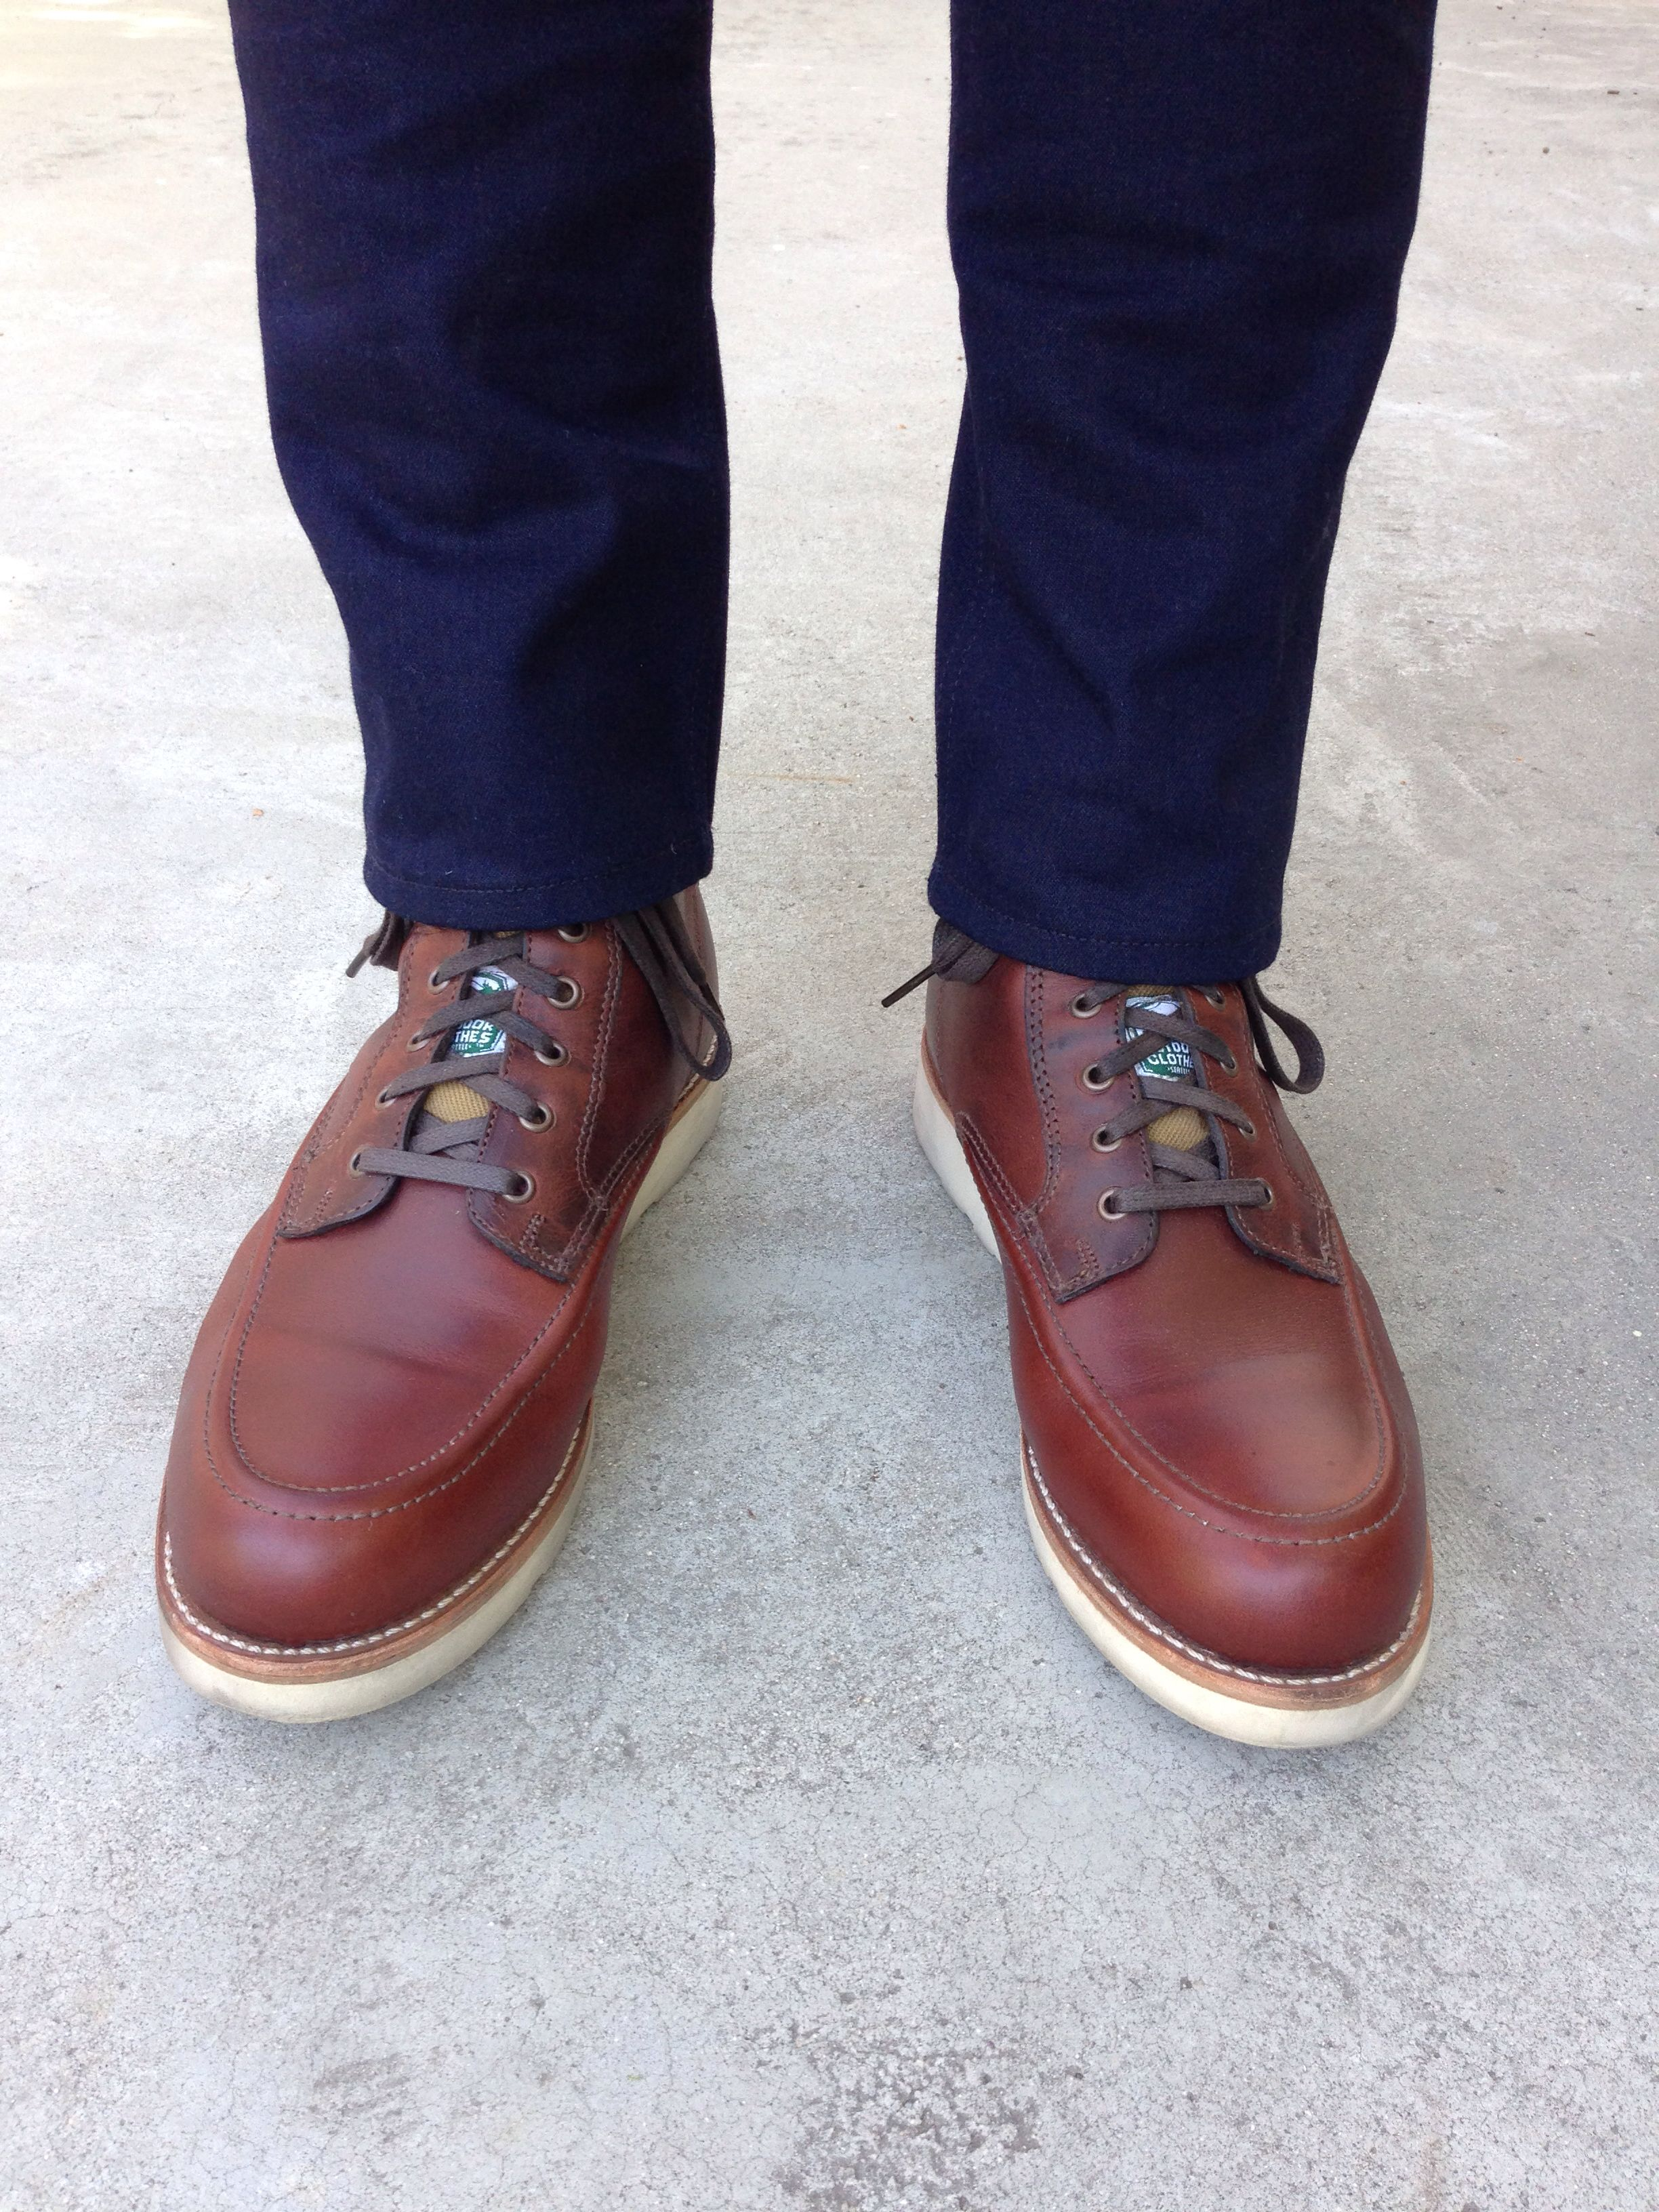 93a1f93921a wolverine 1000 mile emerson filson boots menswear mensstyle ...